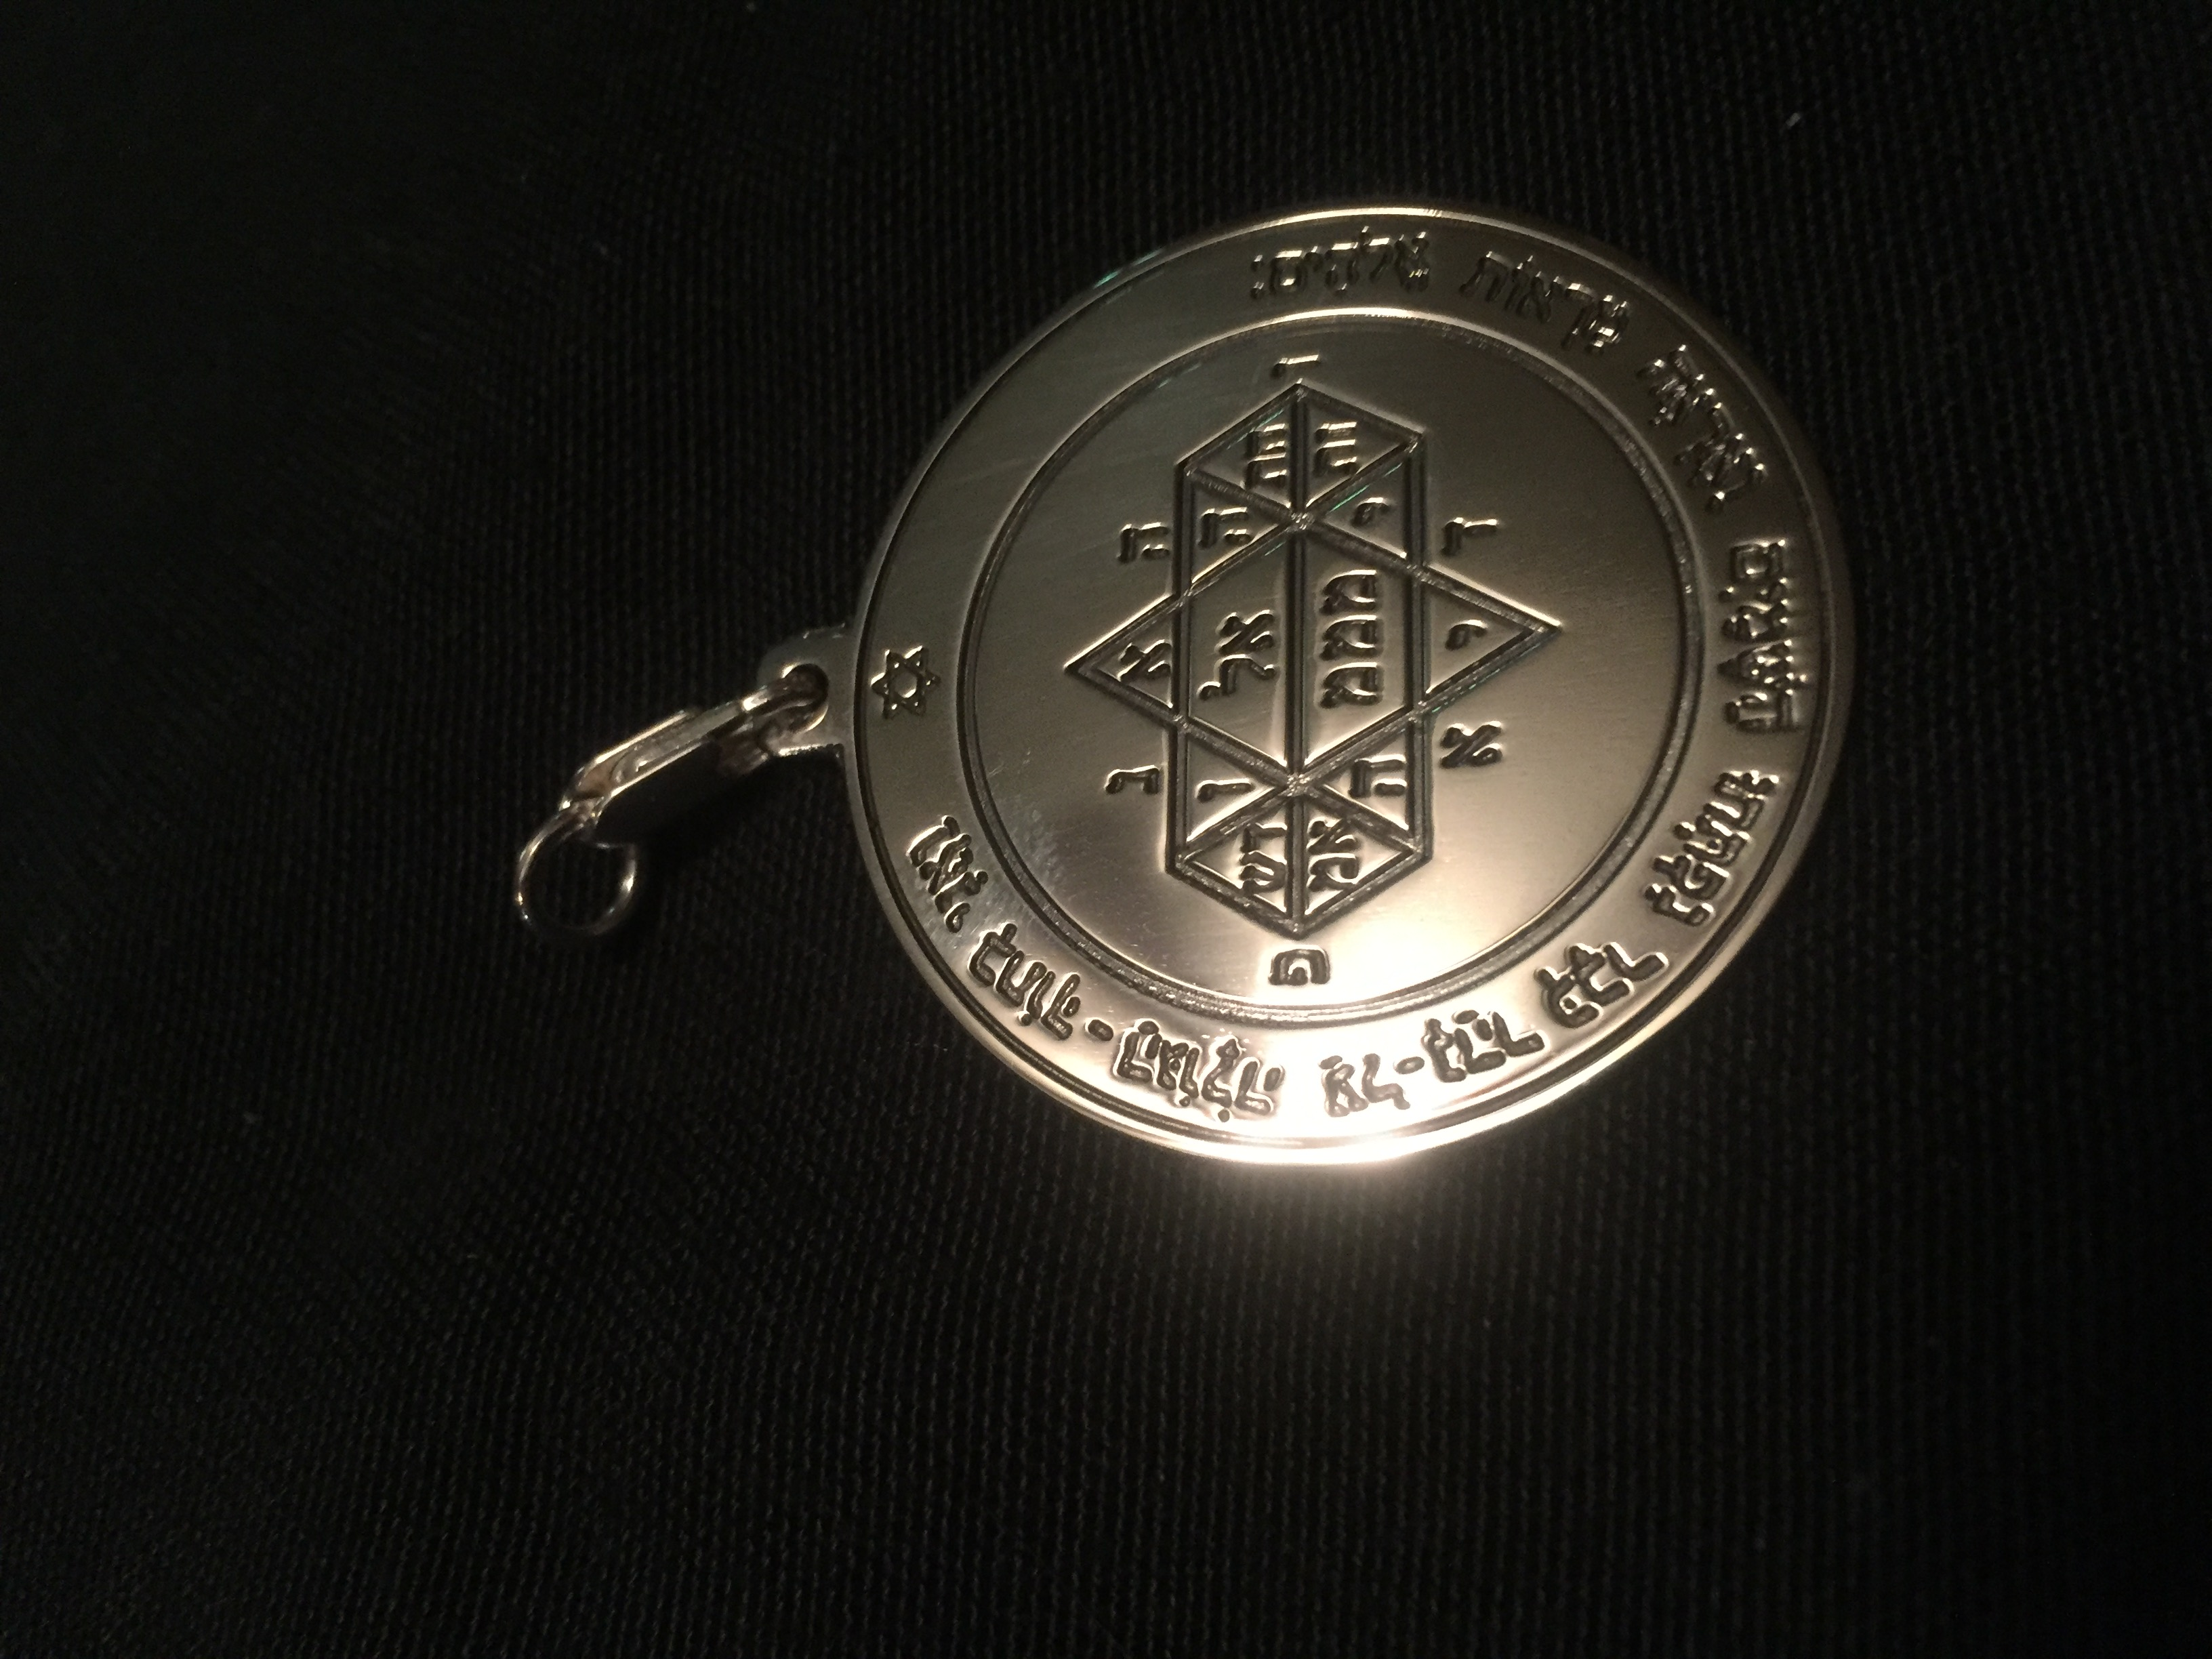 Anyone have experience with enochian keys/tablet? - General